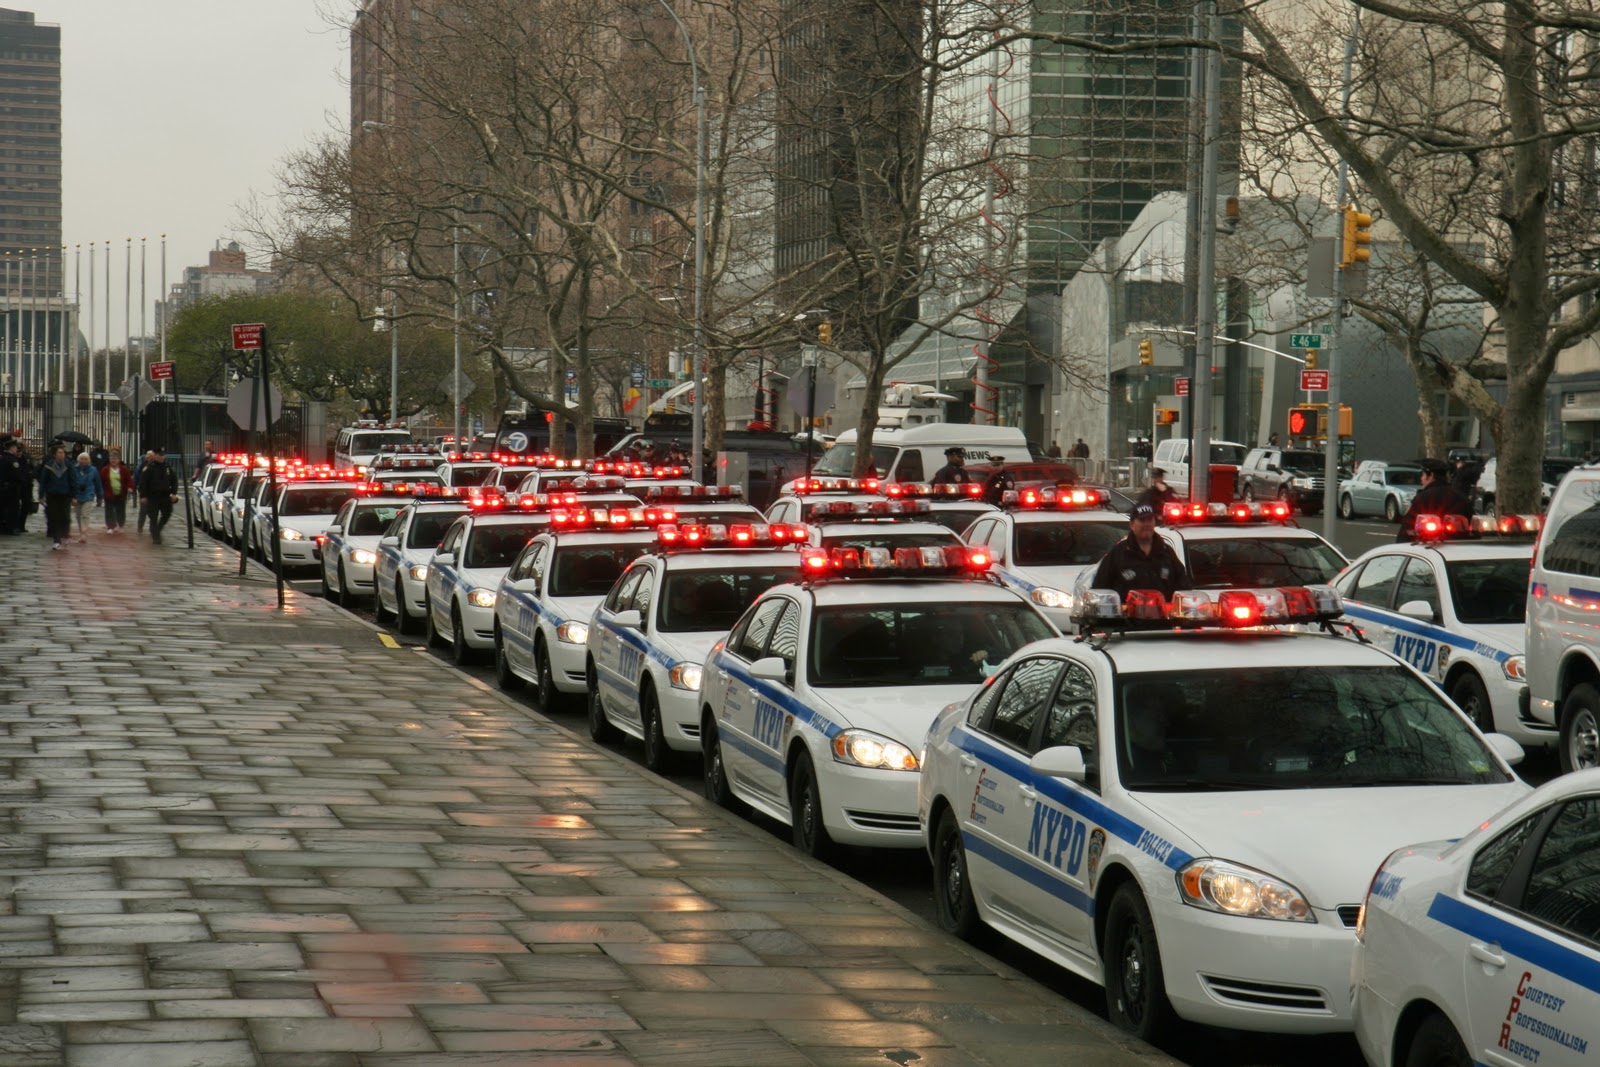 NYPD police assets mobilize for HS/DNDO Securing the Cities full-scale exercise, Tuesday April 5.